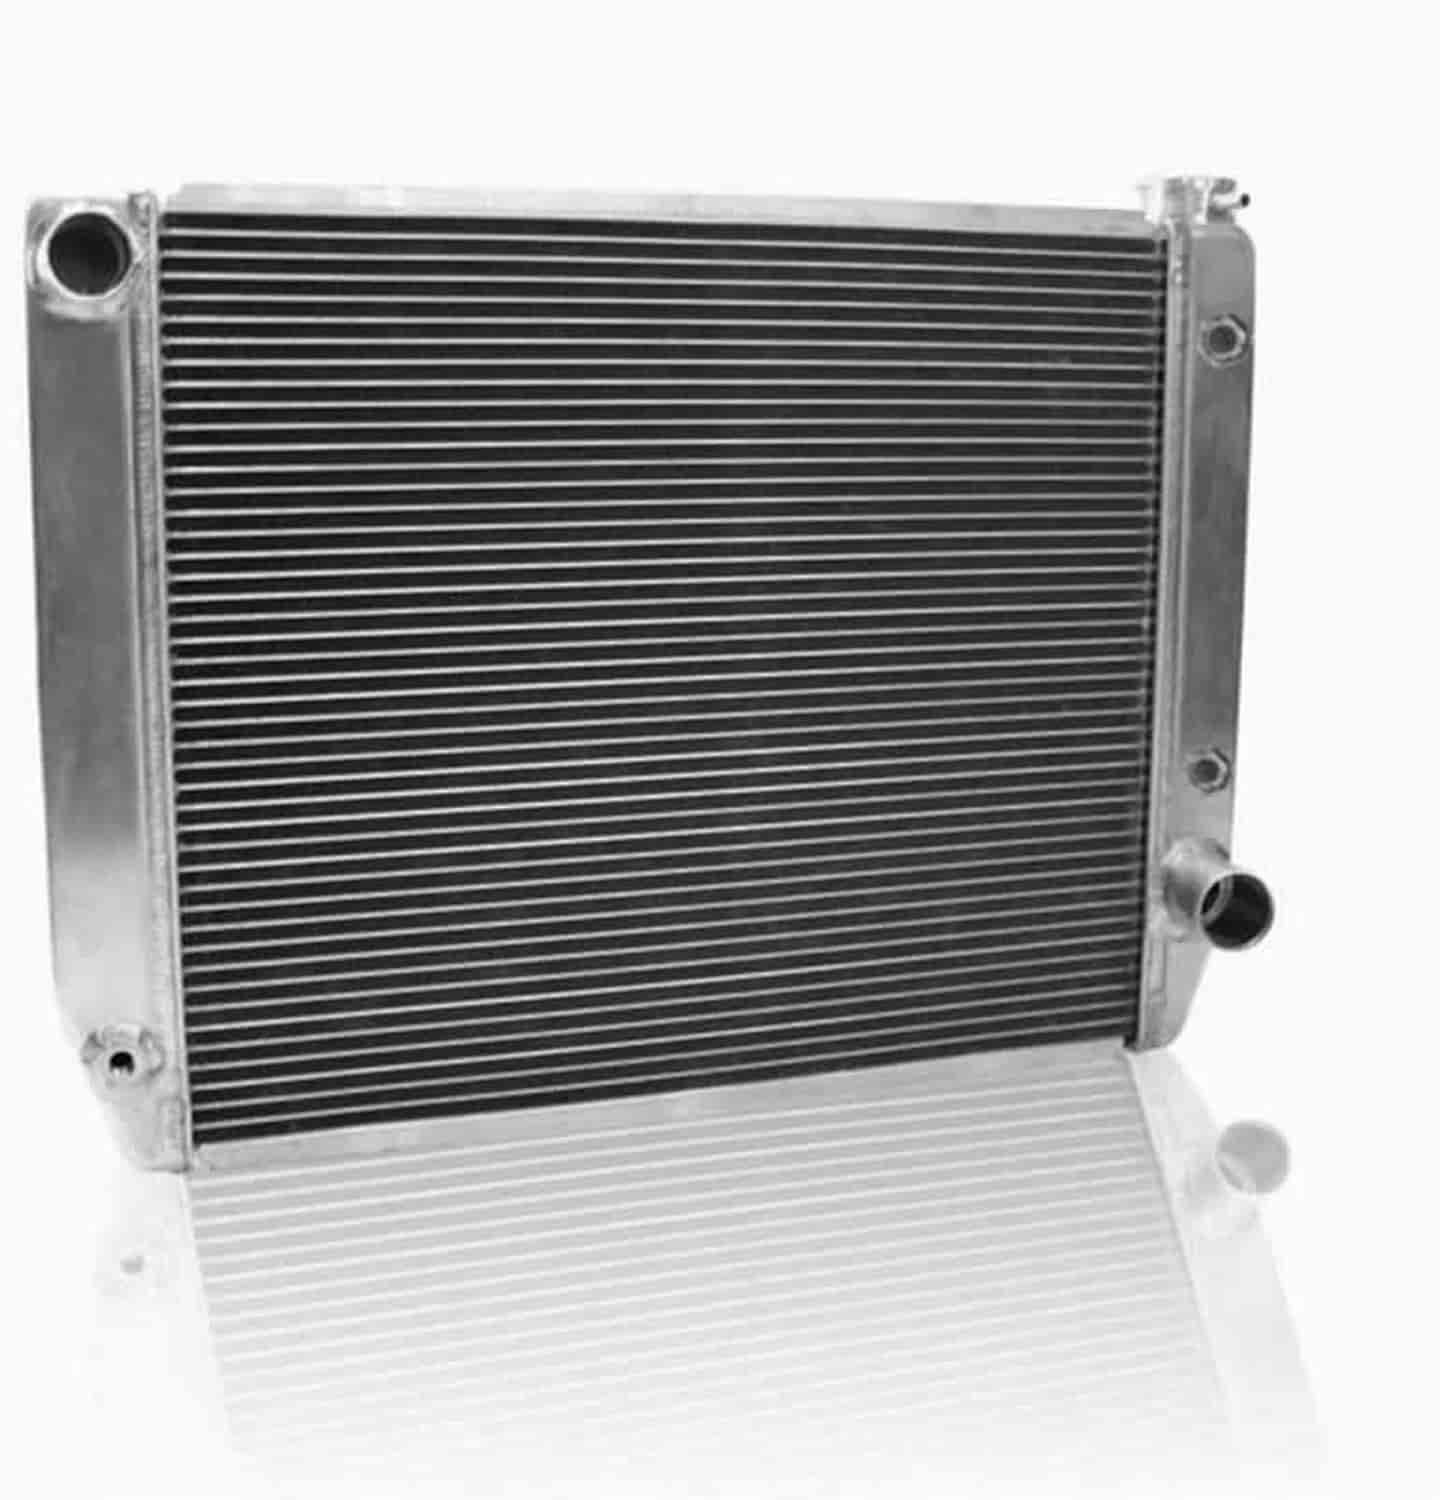 Griffin Radiators 1-55222-T